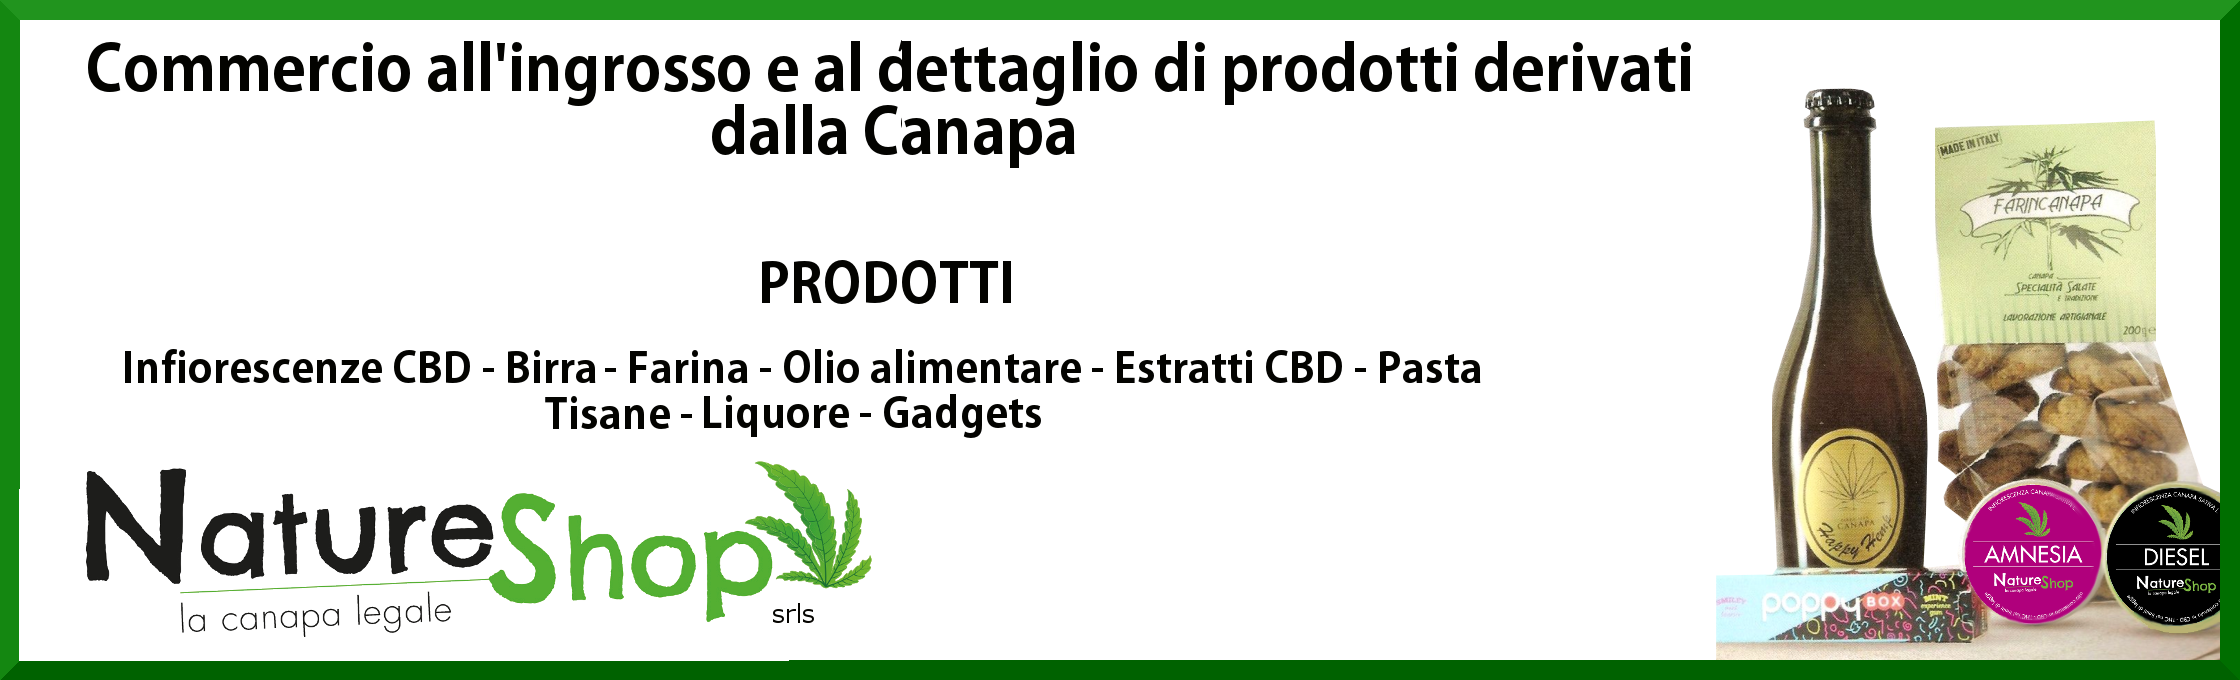 natureshopsrls prodotti derivati dalla canapa sativa